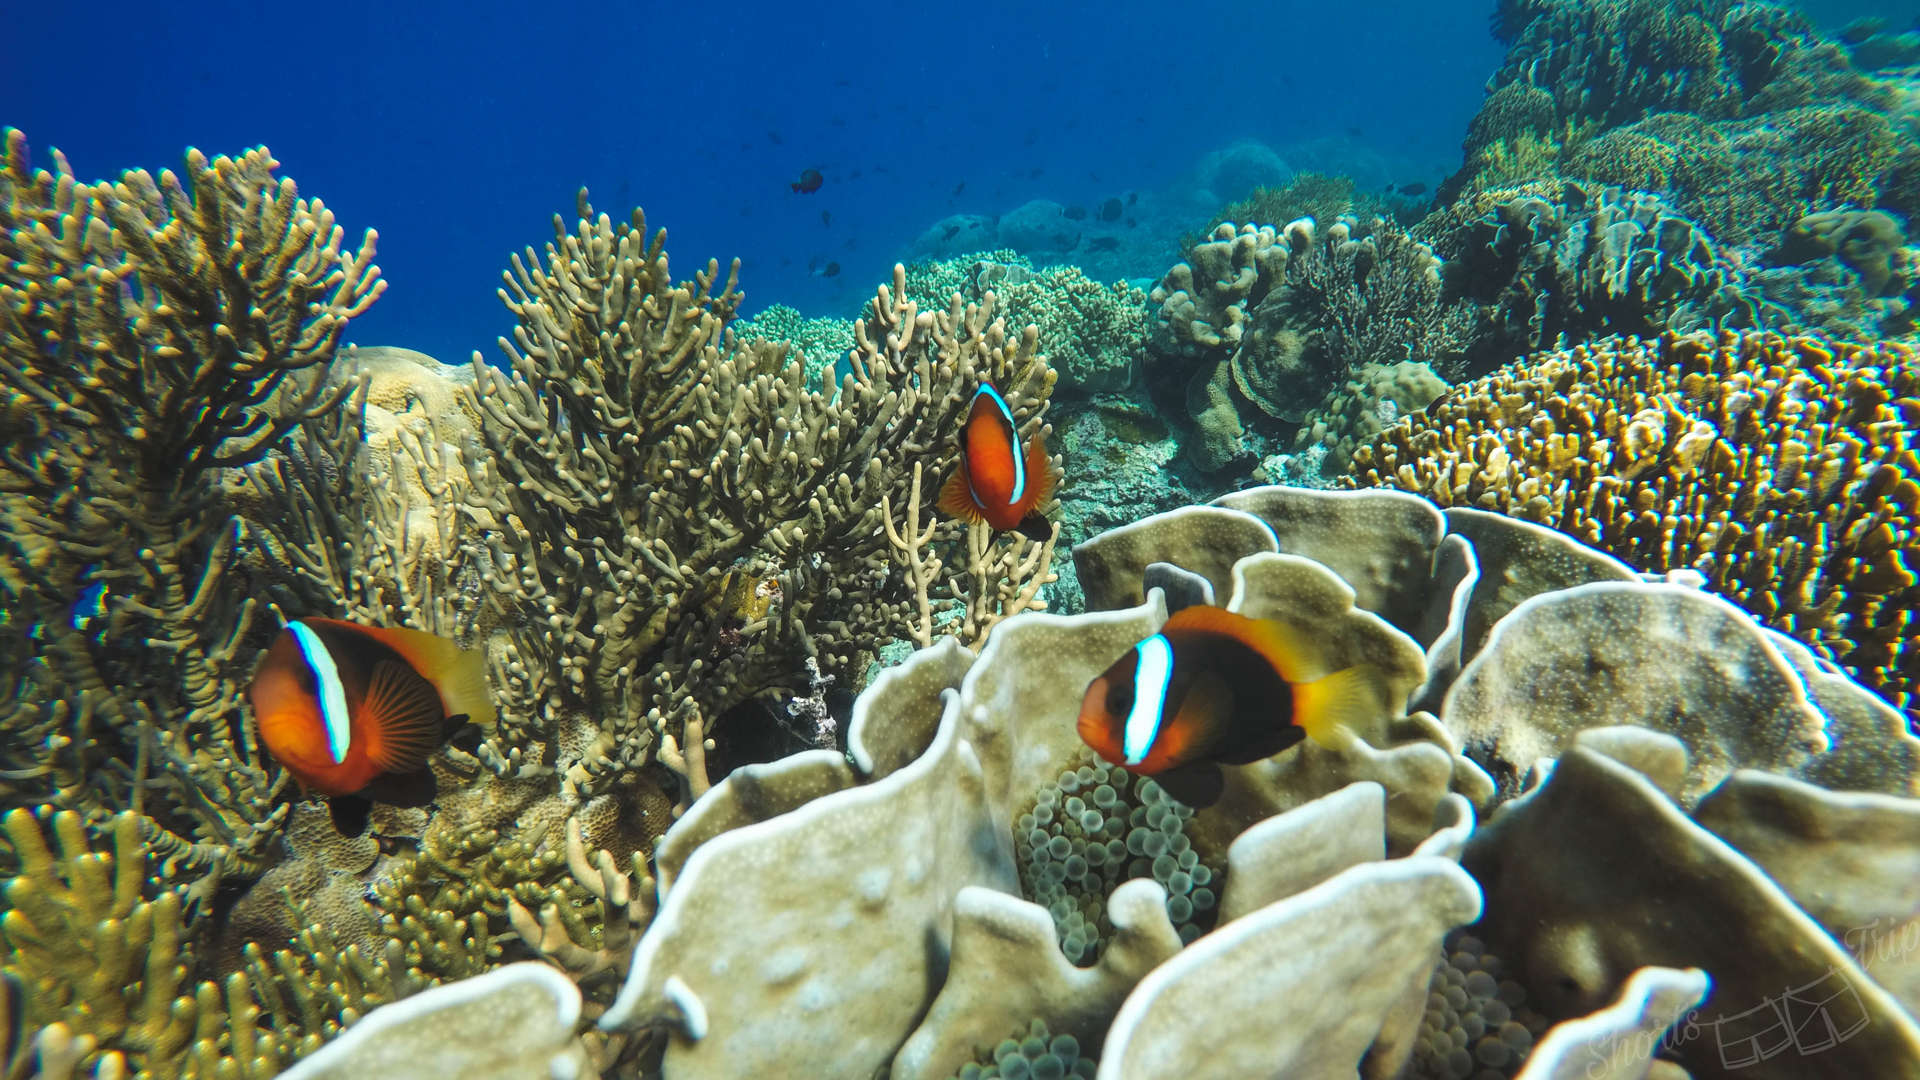 nemo, looking for nemo, banda islands, pulau hatta, hatta island, snorkeling at hatta, snorkelling at hata, hatta snorkeling, best snorkel indonesia, top snorkeling indonesia